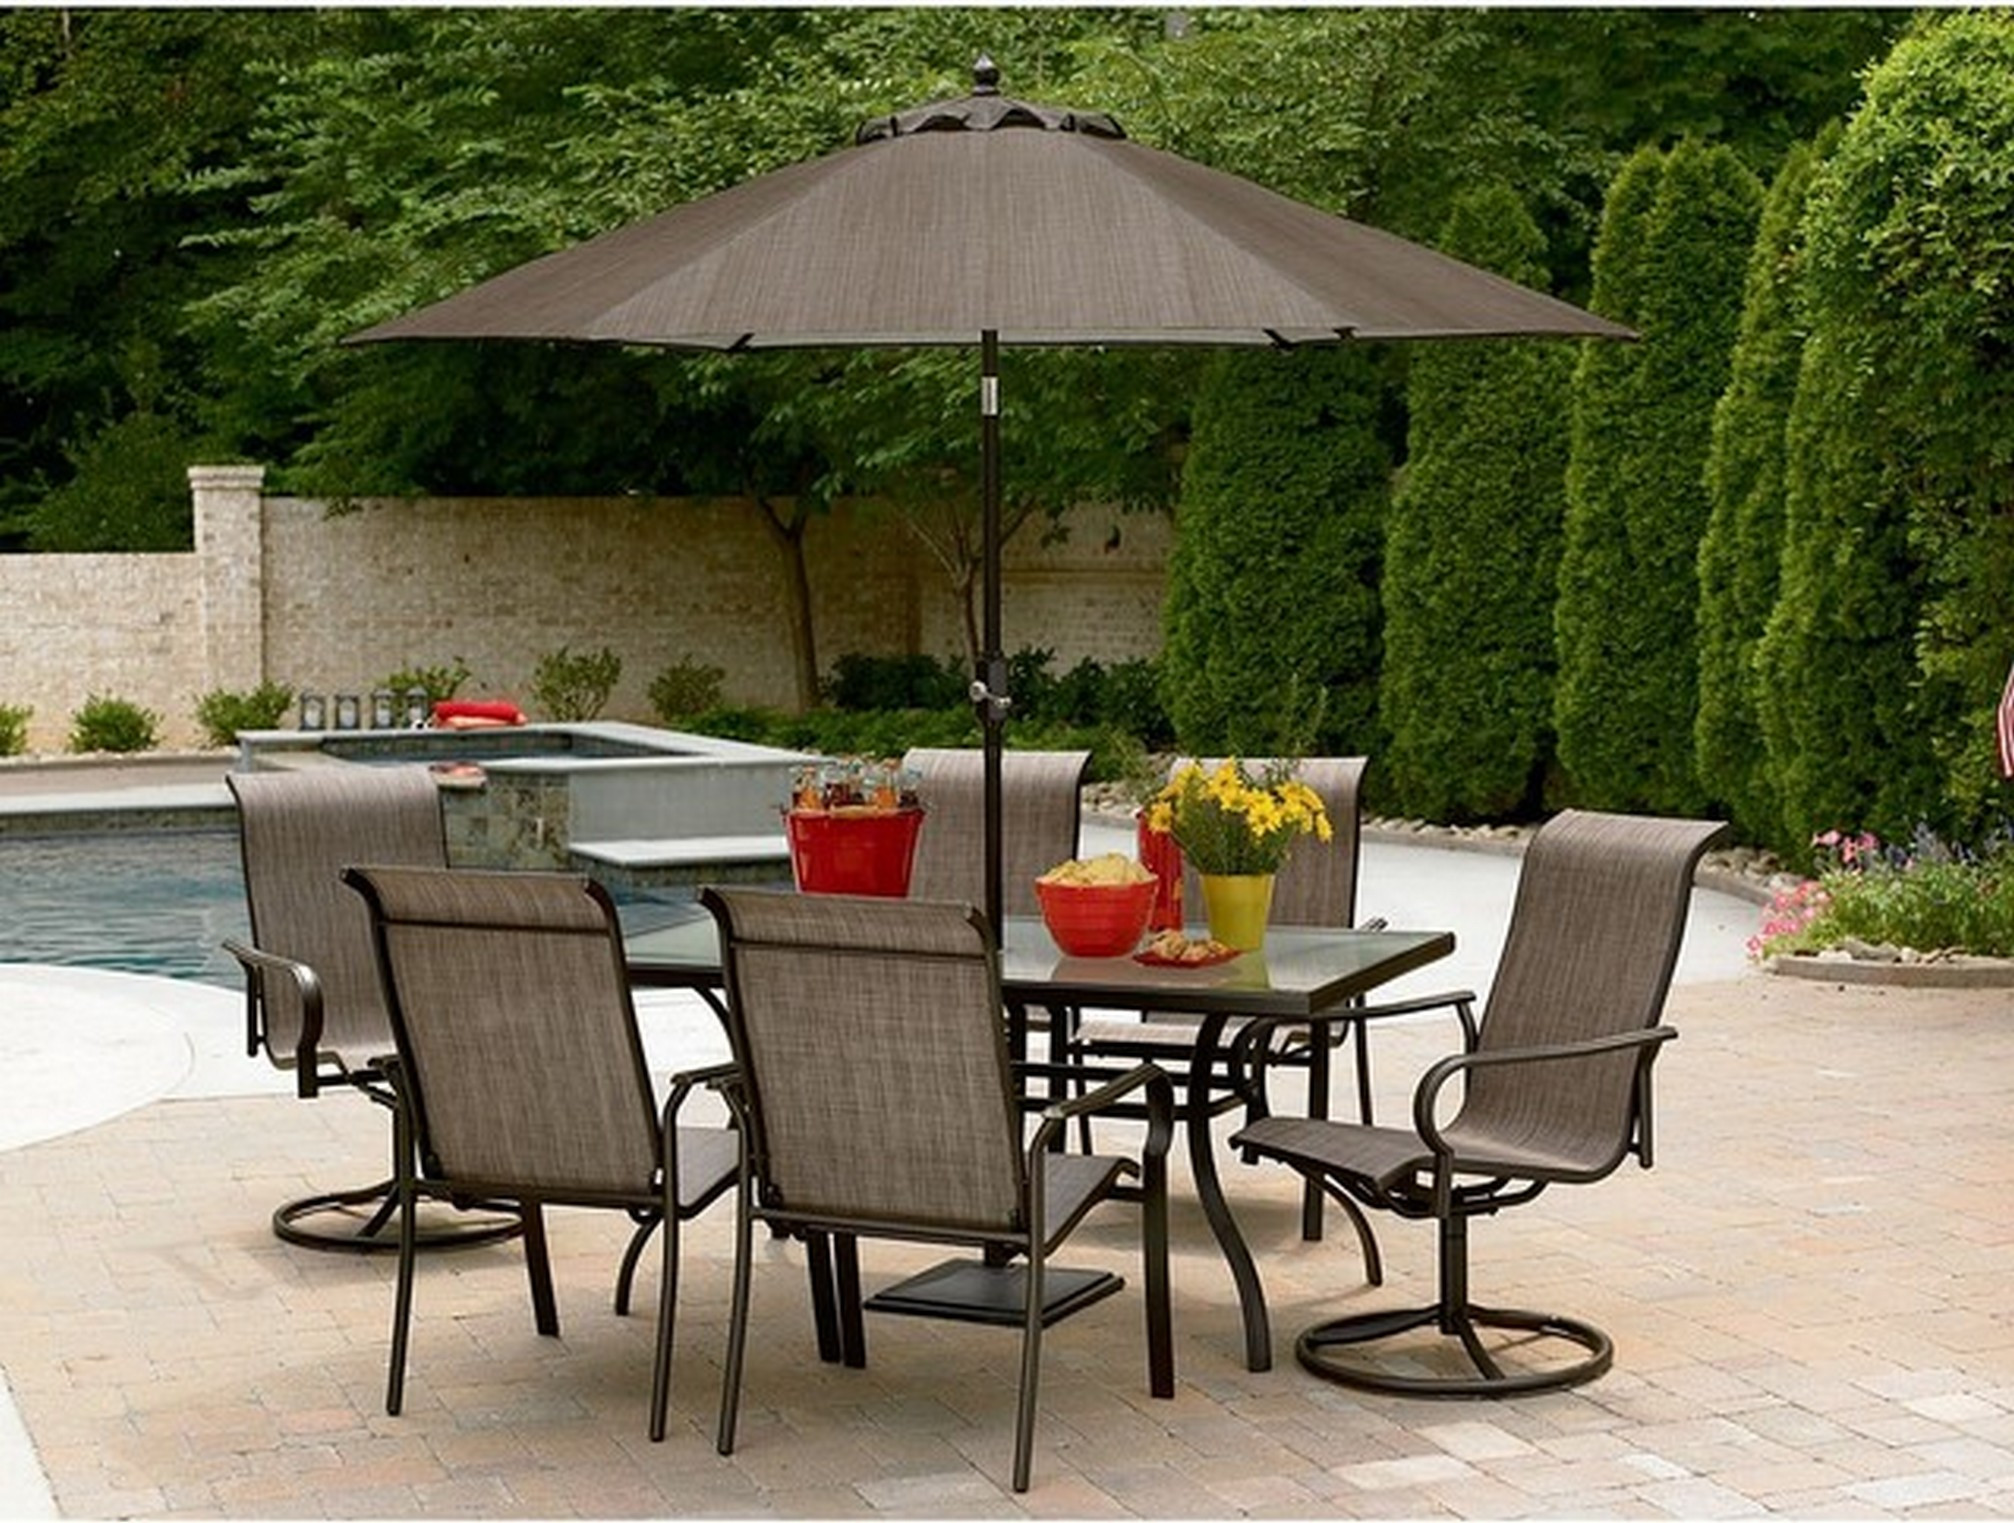 Best ideas about Patio Dining Sets On Sale . Save or Pin Literarywondrous Patio Table And Chairseca Now.